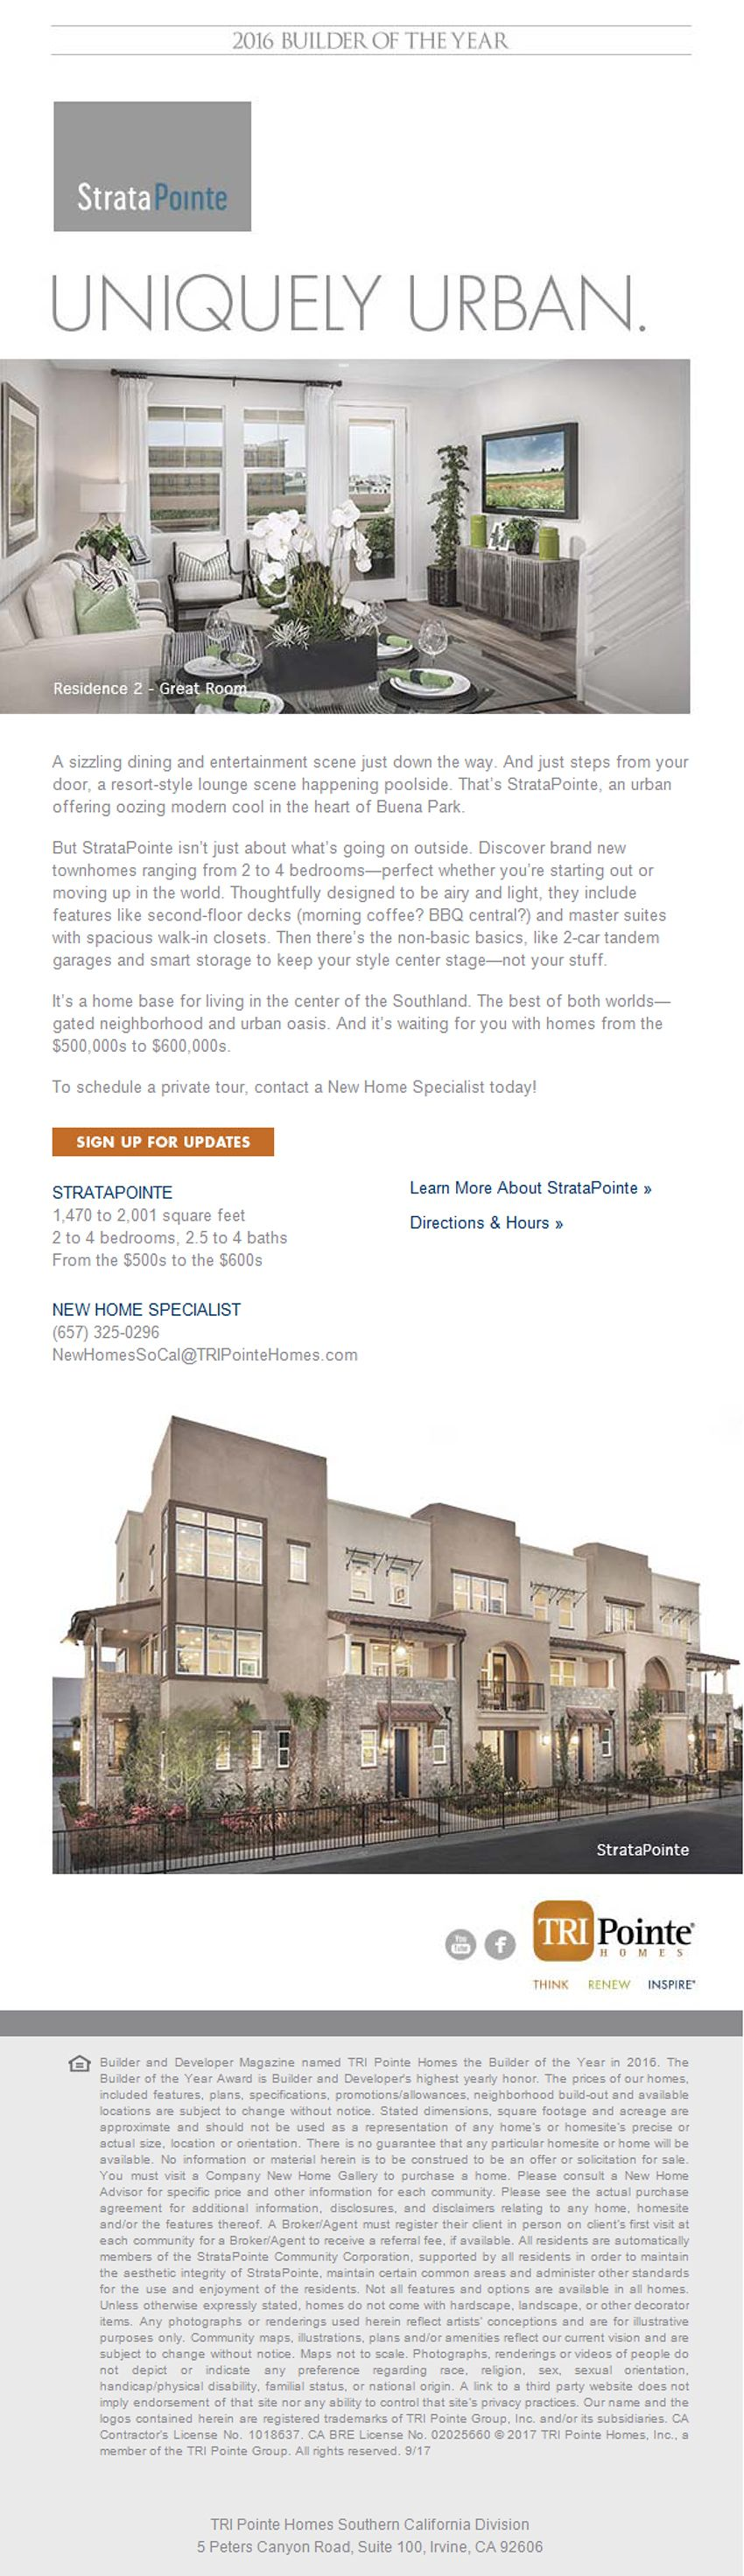 New Homes For Sale In Buena Park, California StrataPointe In Buena Park:  Cool,